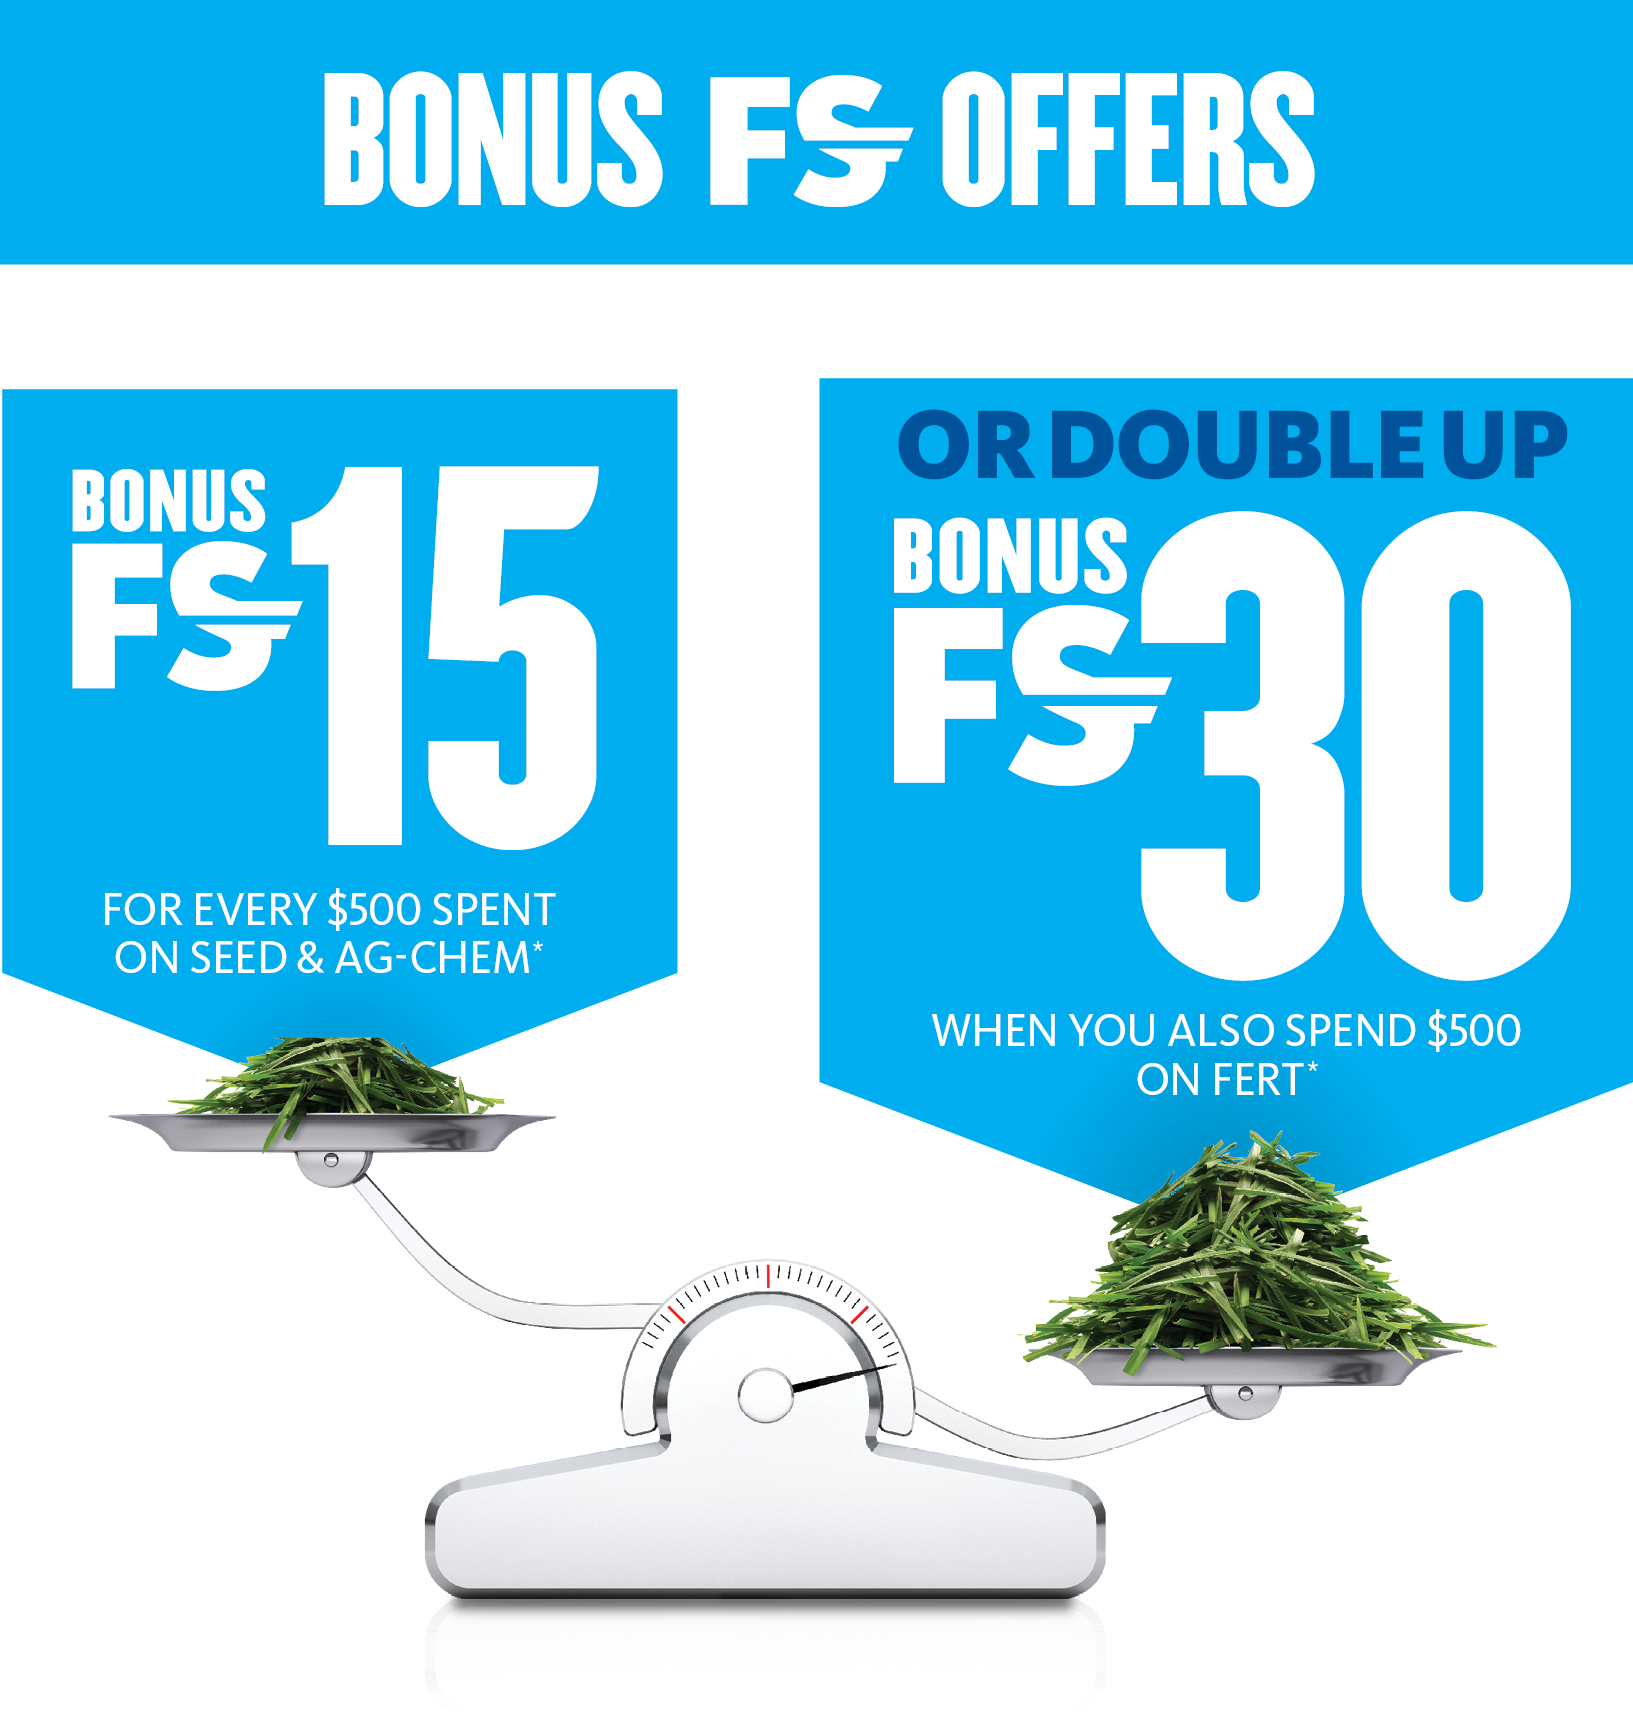 Fonterra exclusive offer